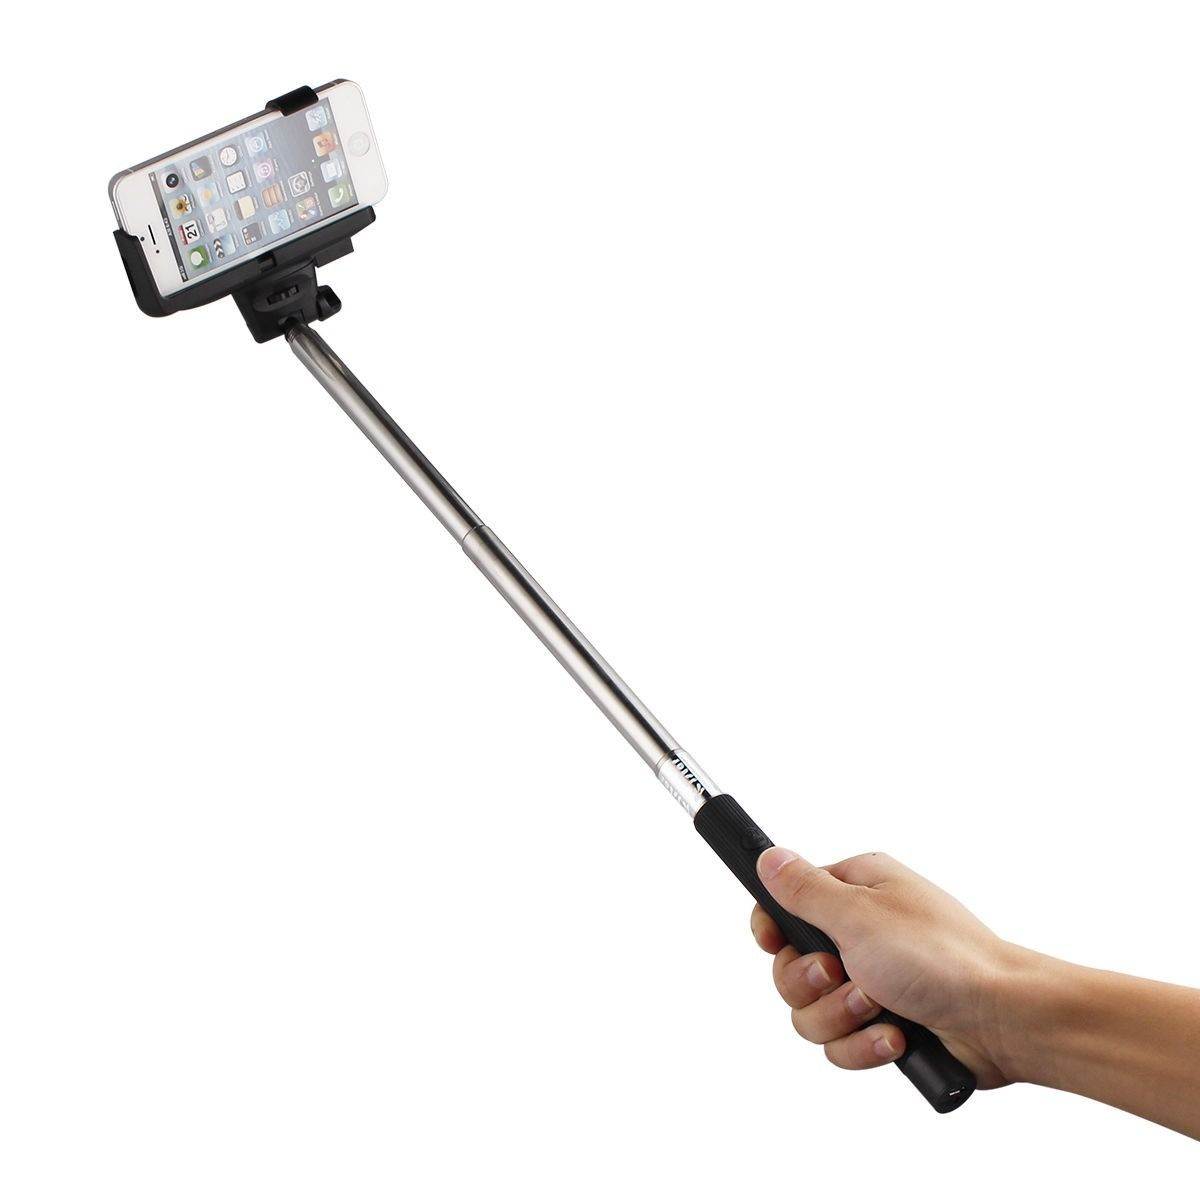 selfie stick hot girls wallpaper. Black Bedroom Furniture Sets. Home Design Ideas